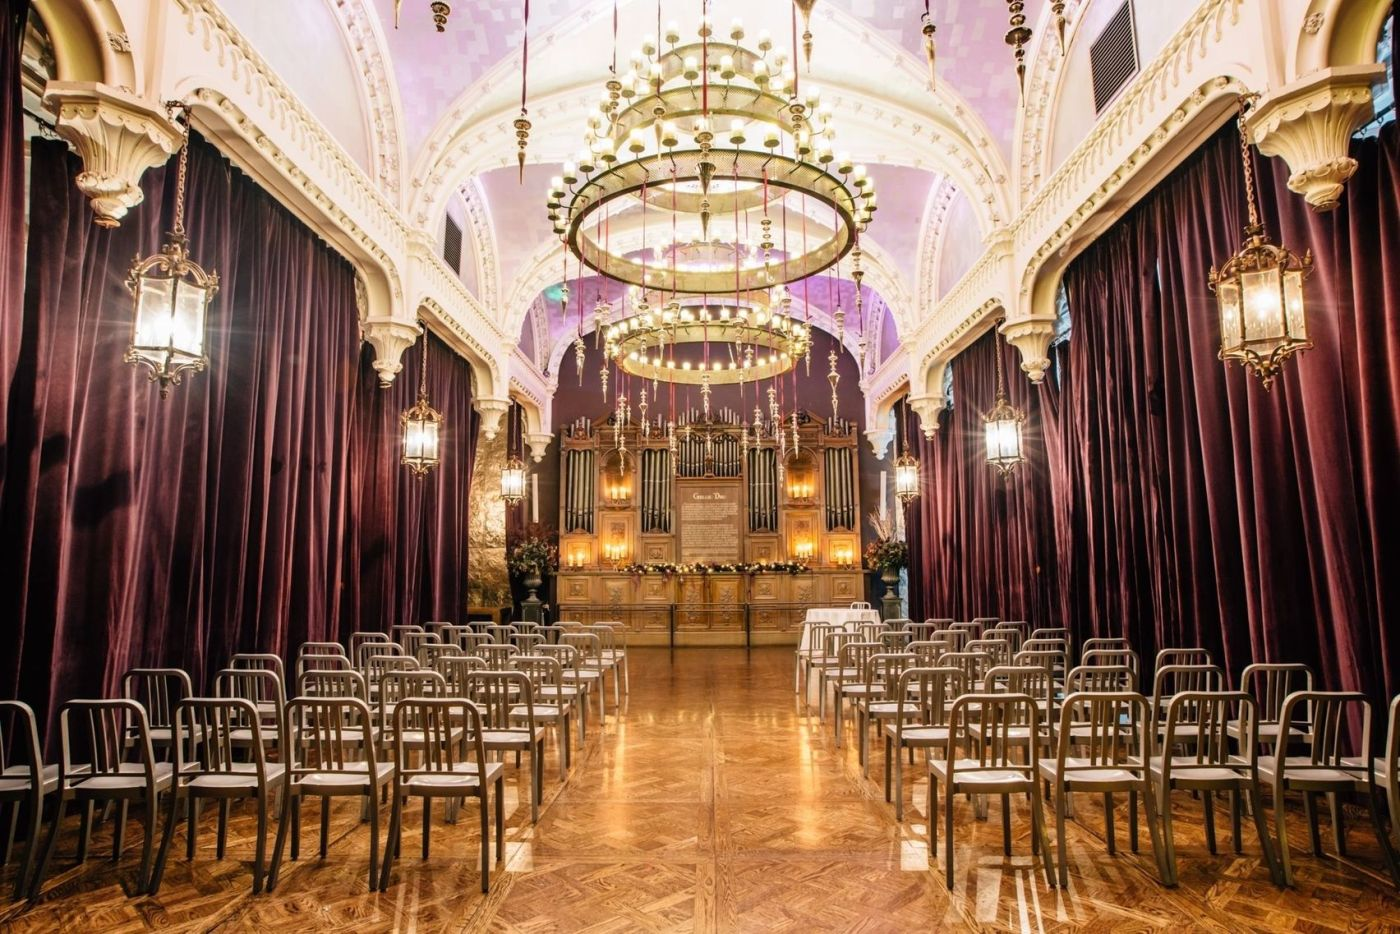 A large auditorium in Edinburgh. With high arched ceilings, red velvet drapes and chandeliers.